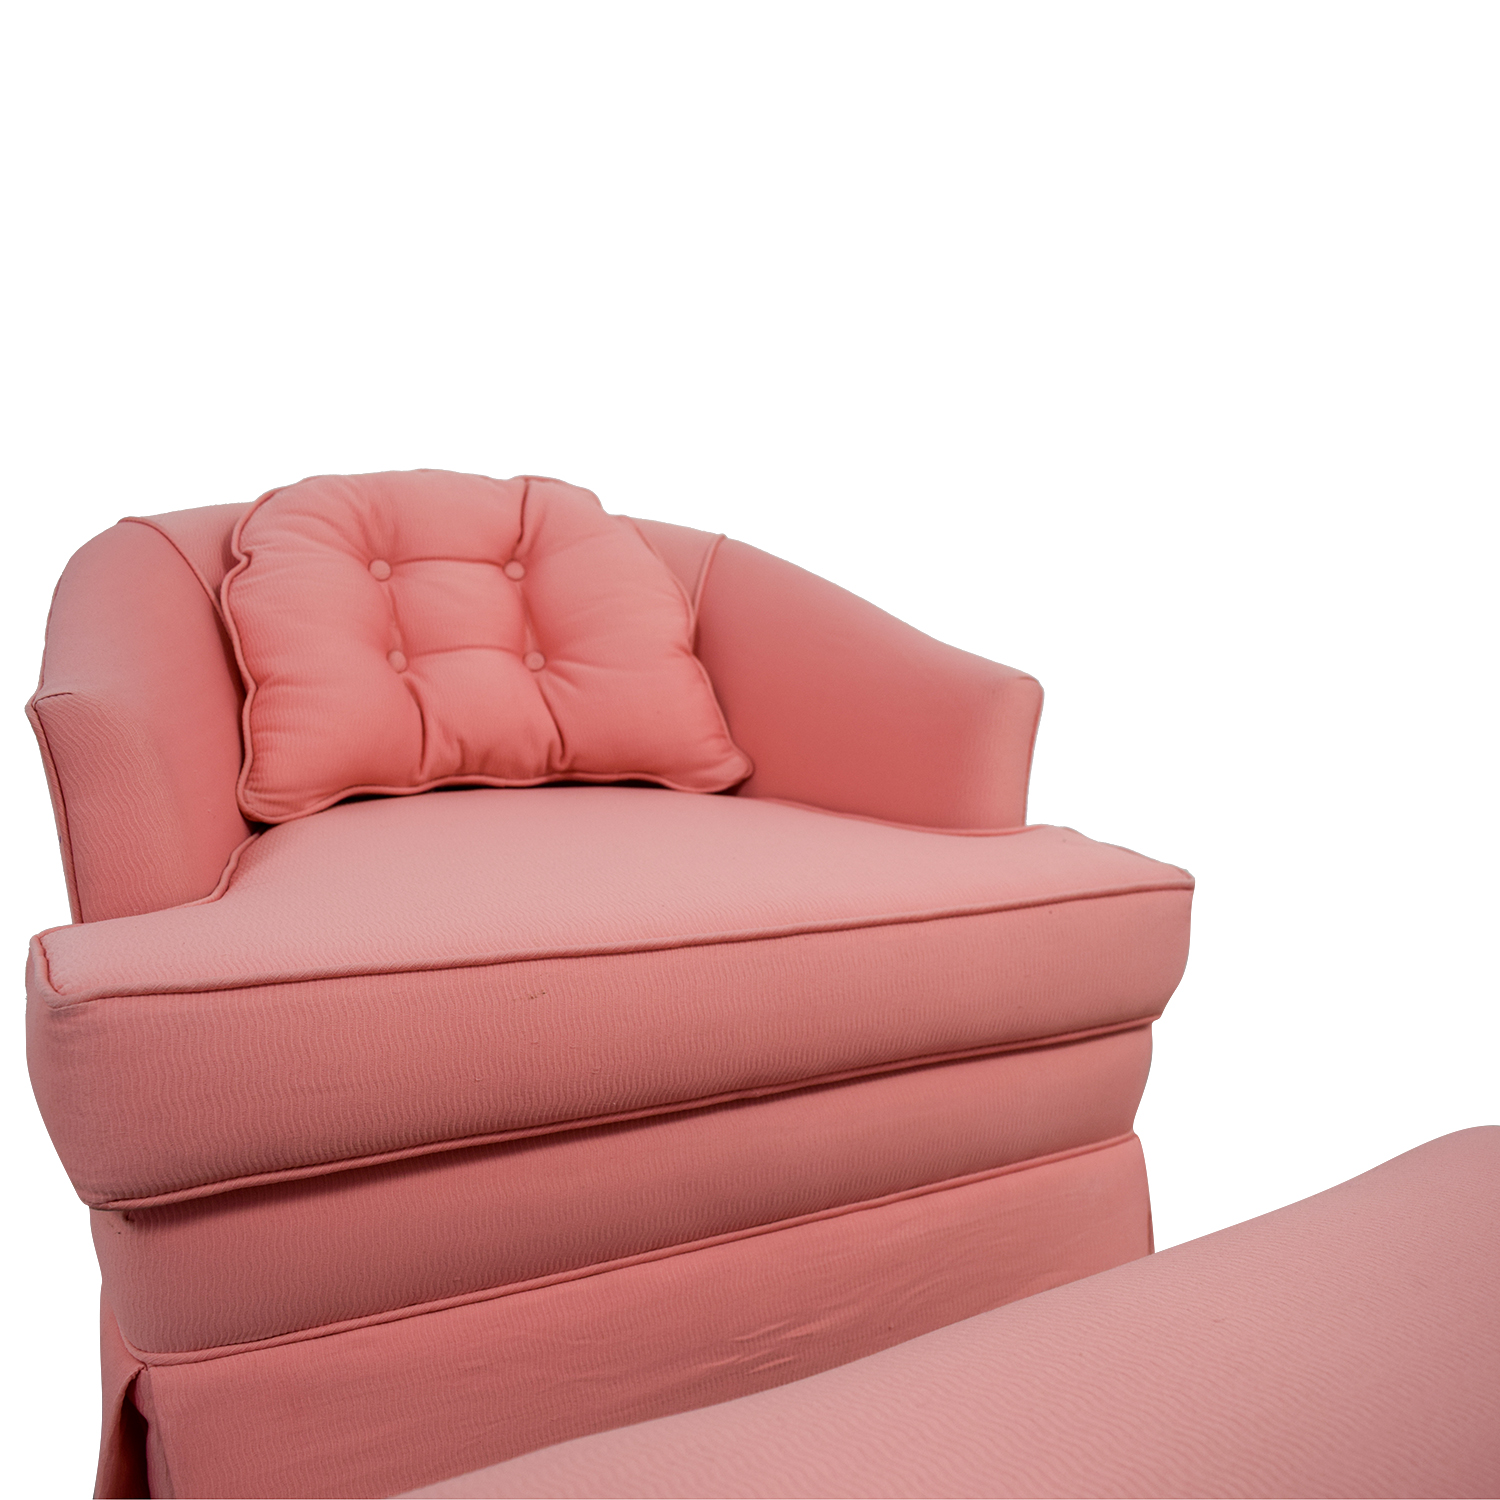 83 Off Pink Accent Chair With Ottoman Chairs